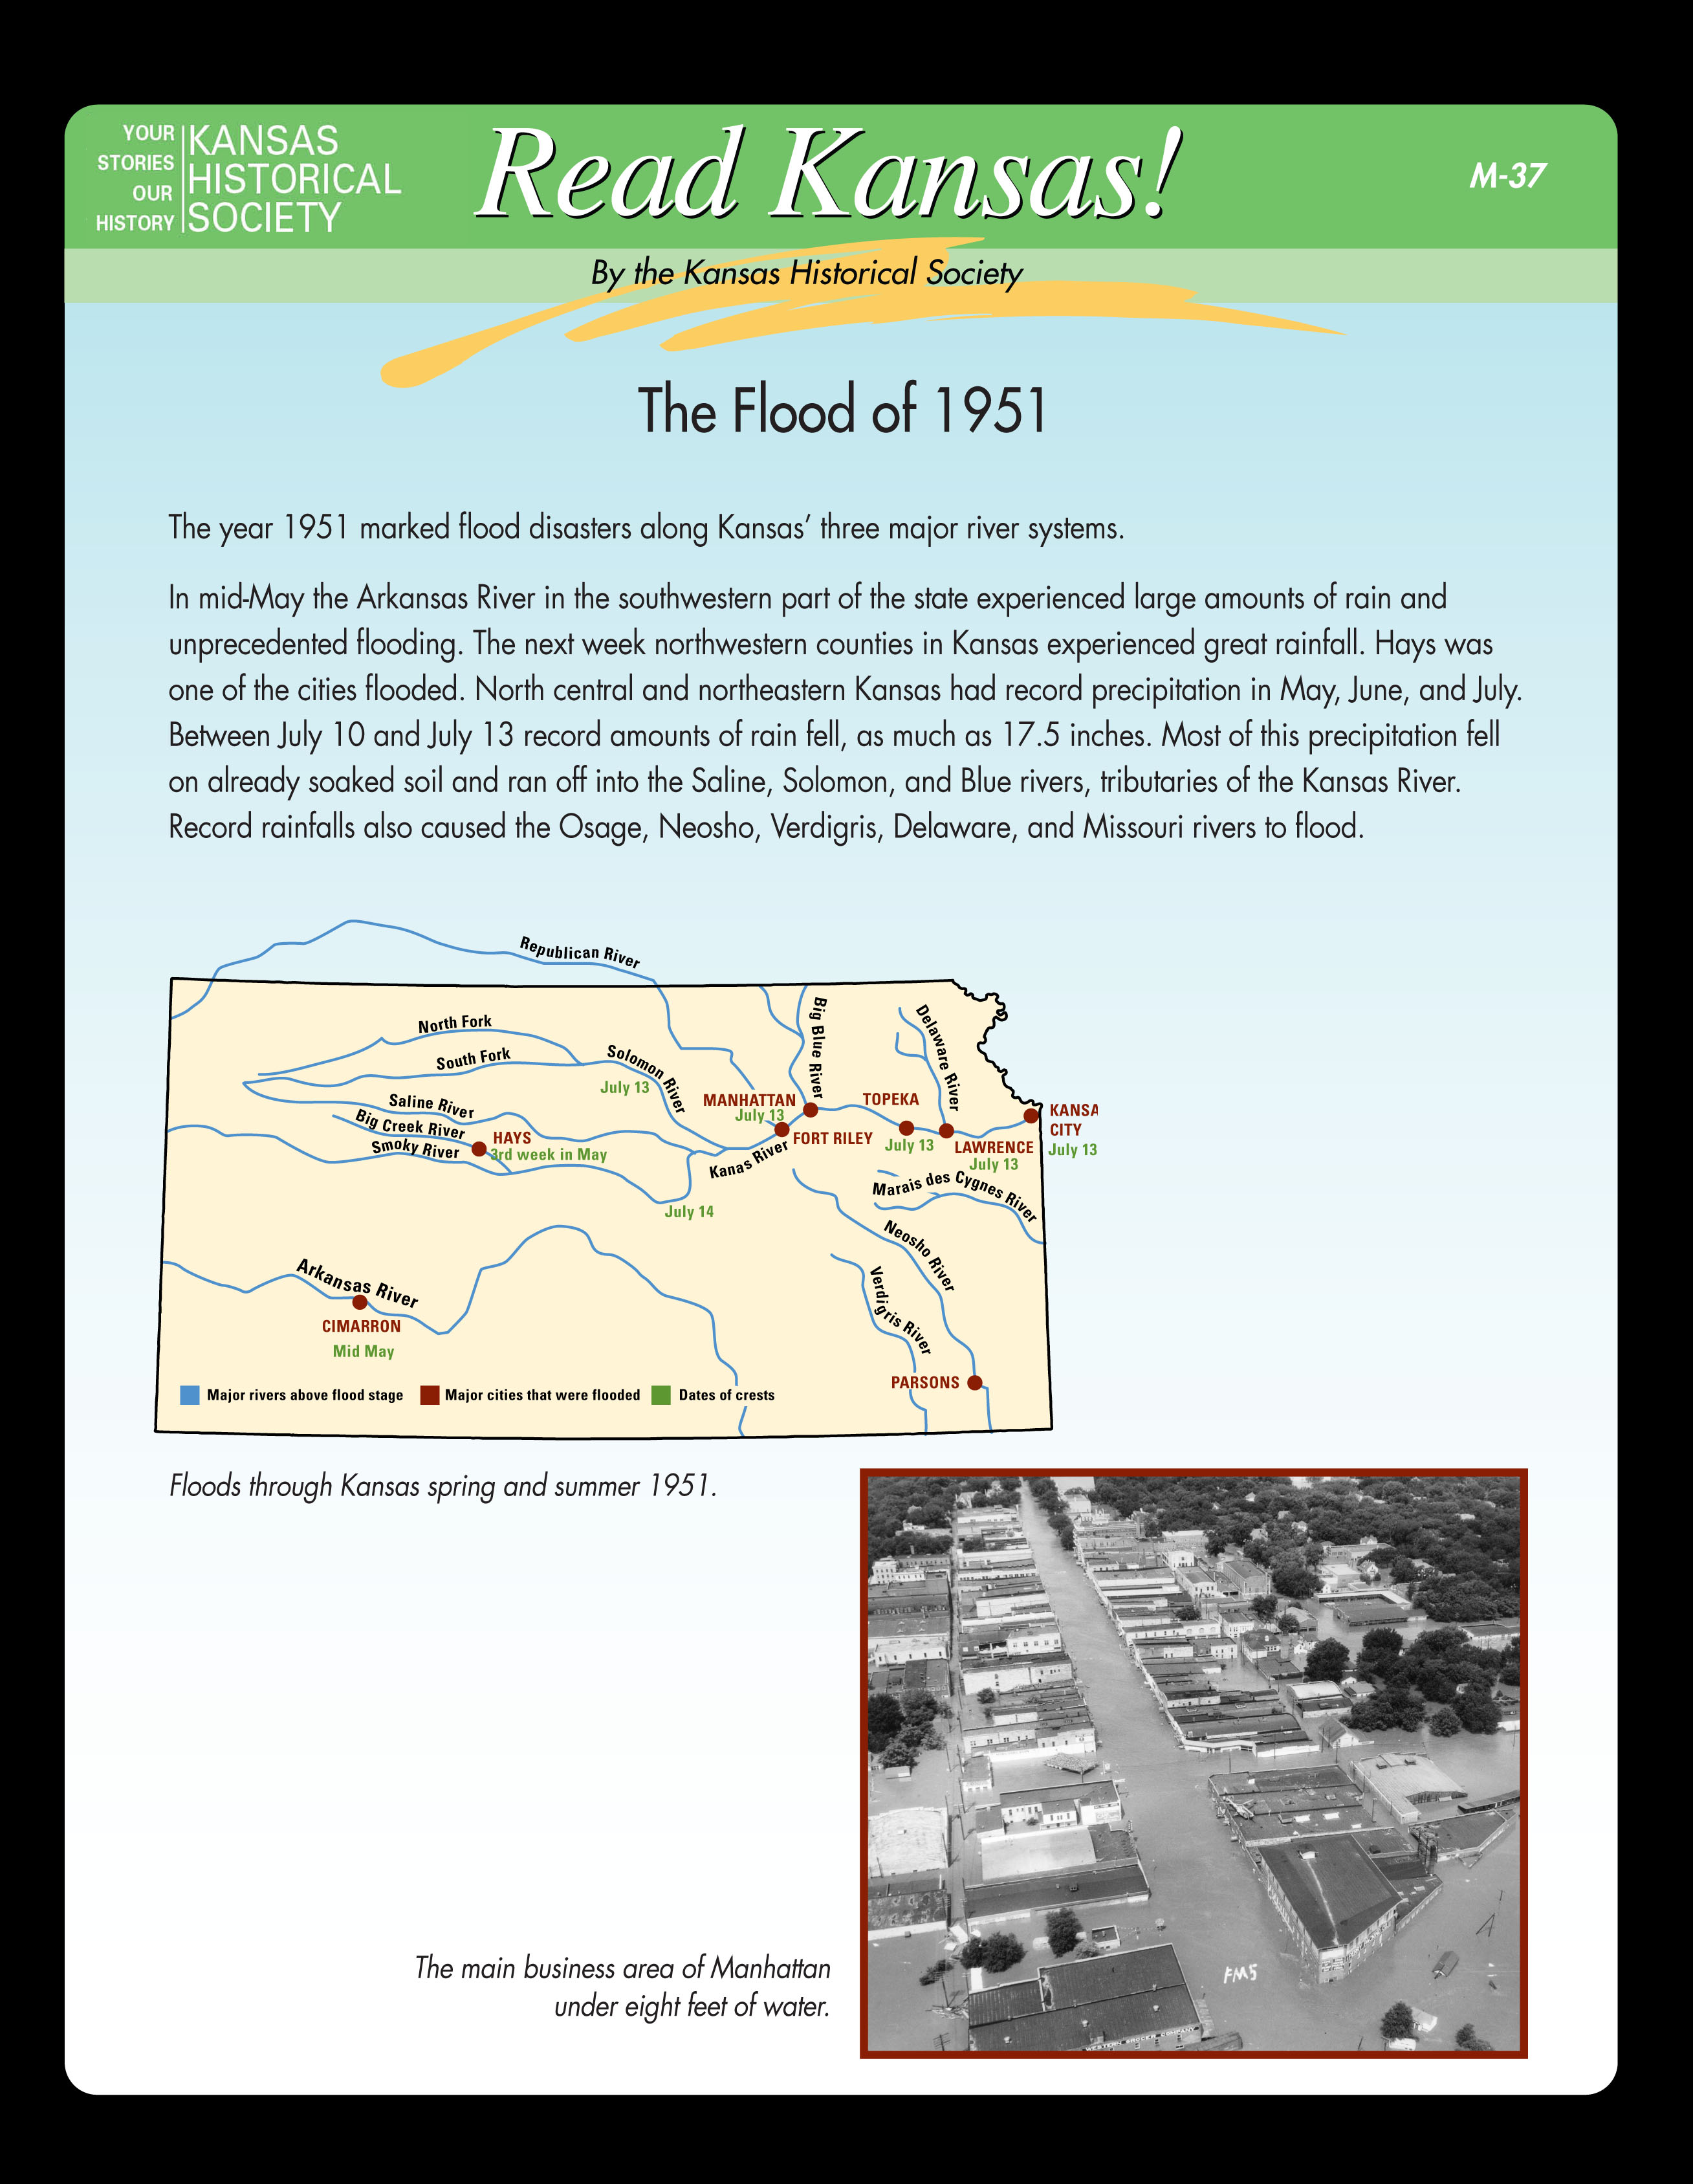 The Flood of 1951